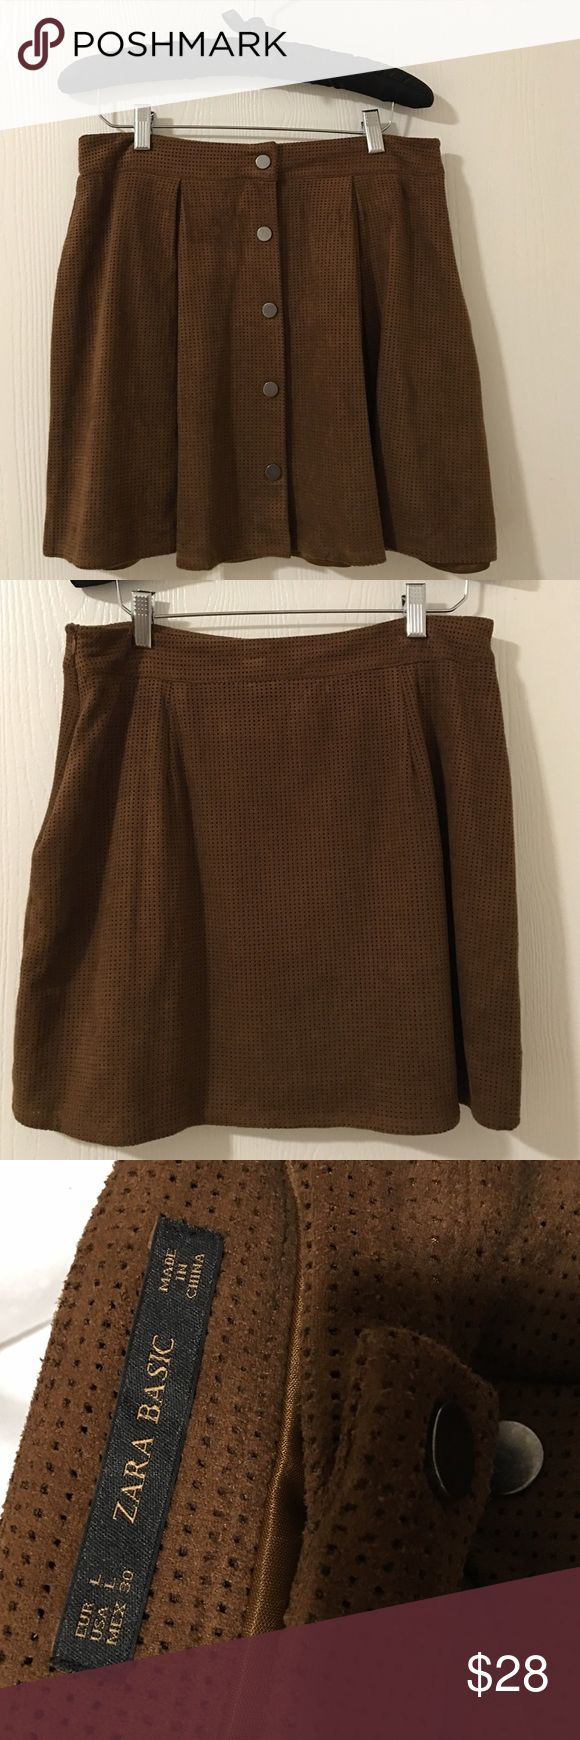 Zara Button Skirt NWOT This gorgeous skirt is perfect for Fall/Winter! Great for pairing with stockings or a coat! Size large. Runs a little small. New without tags. Zara Skirts Mini